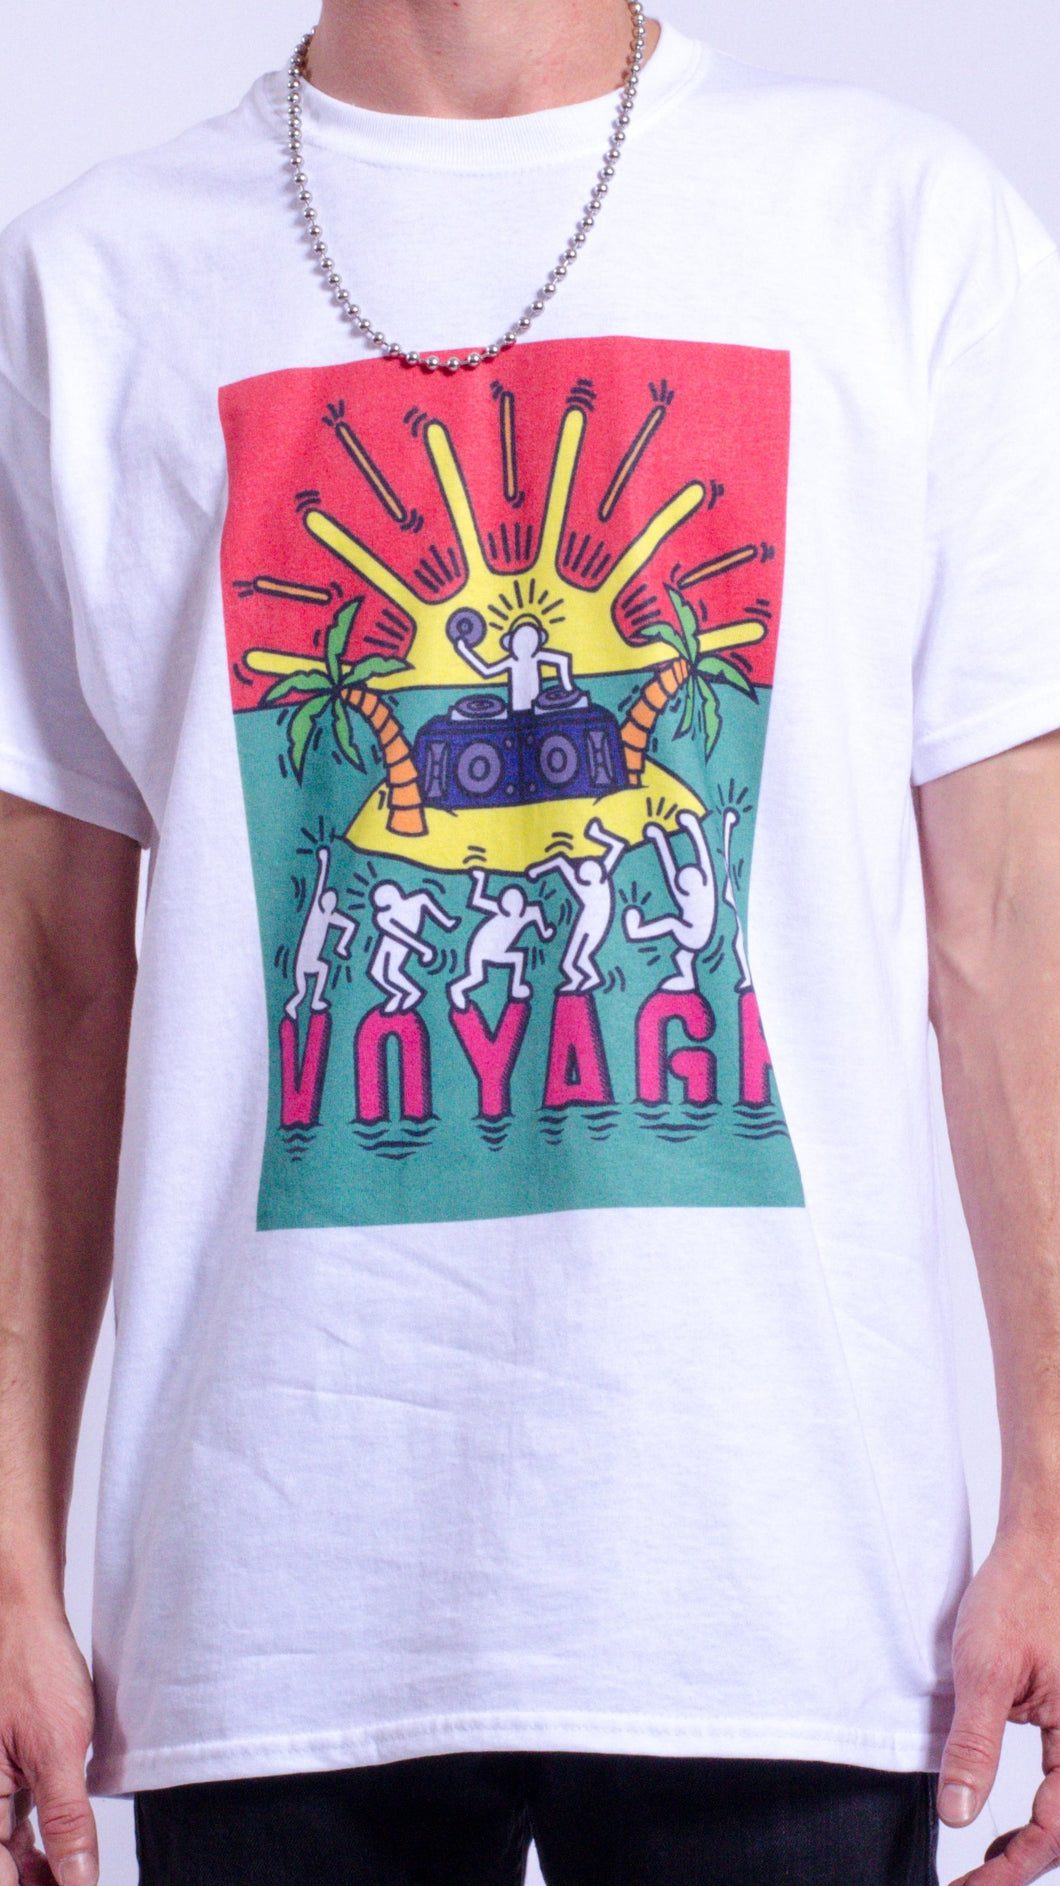 Voyage Short Sleeve Tee White (BOGO50%OFF)